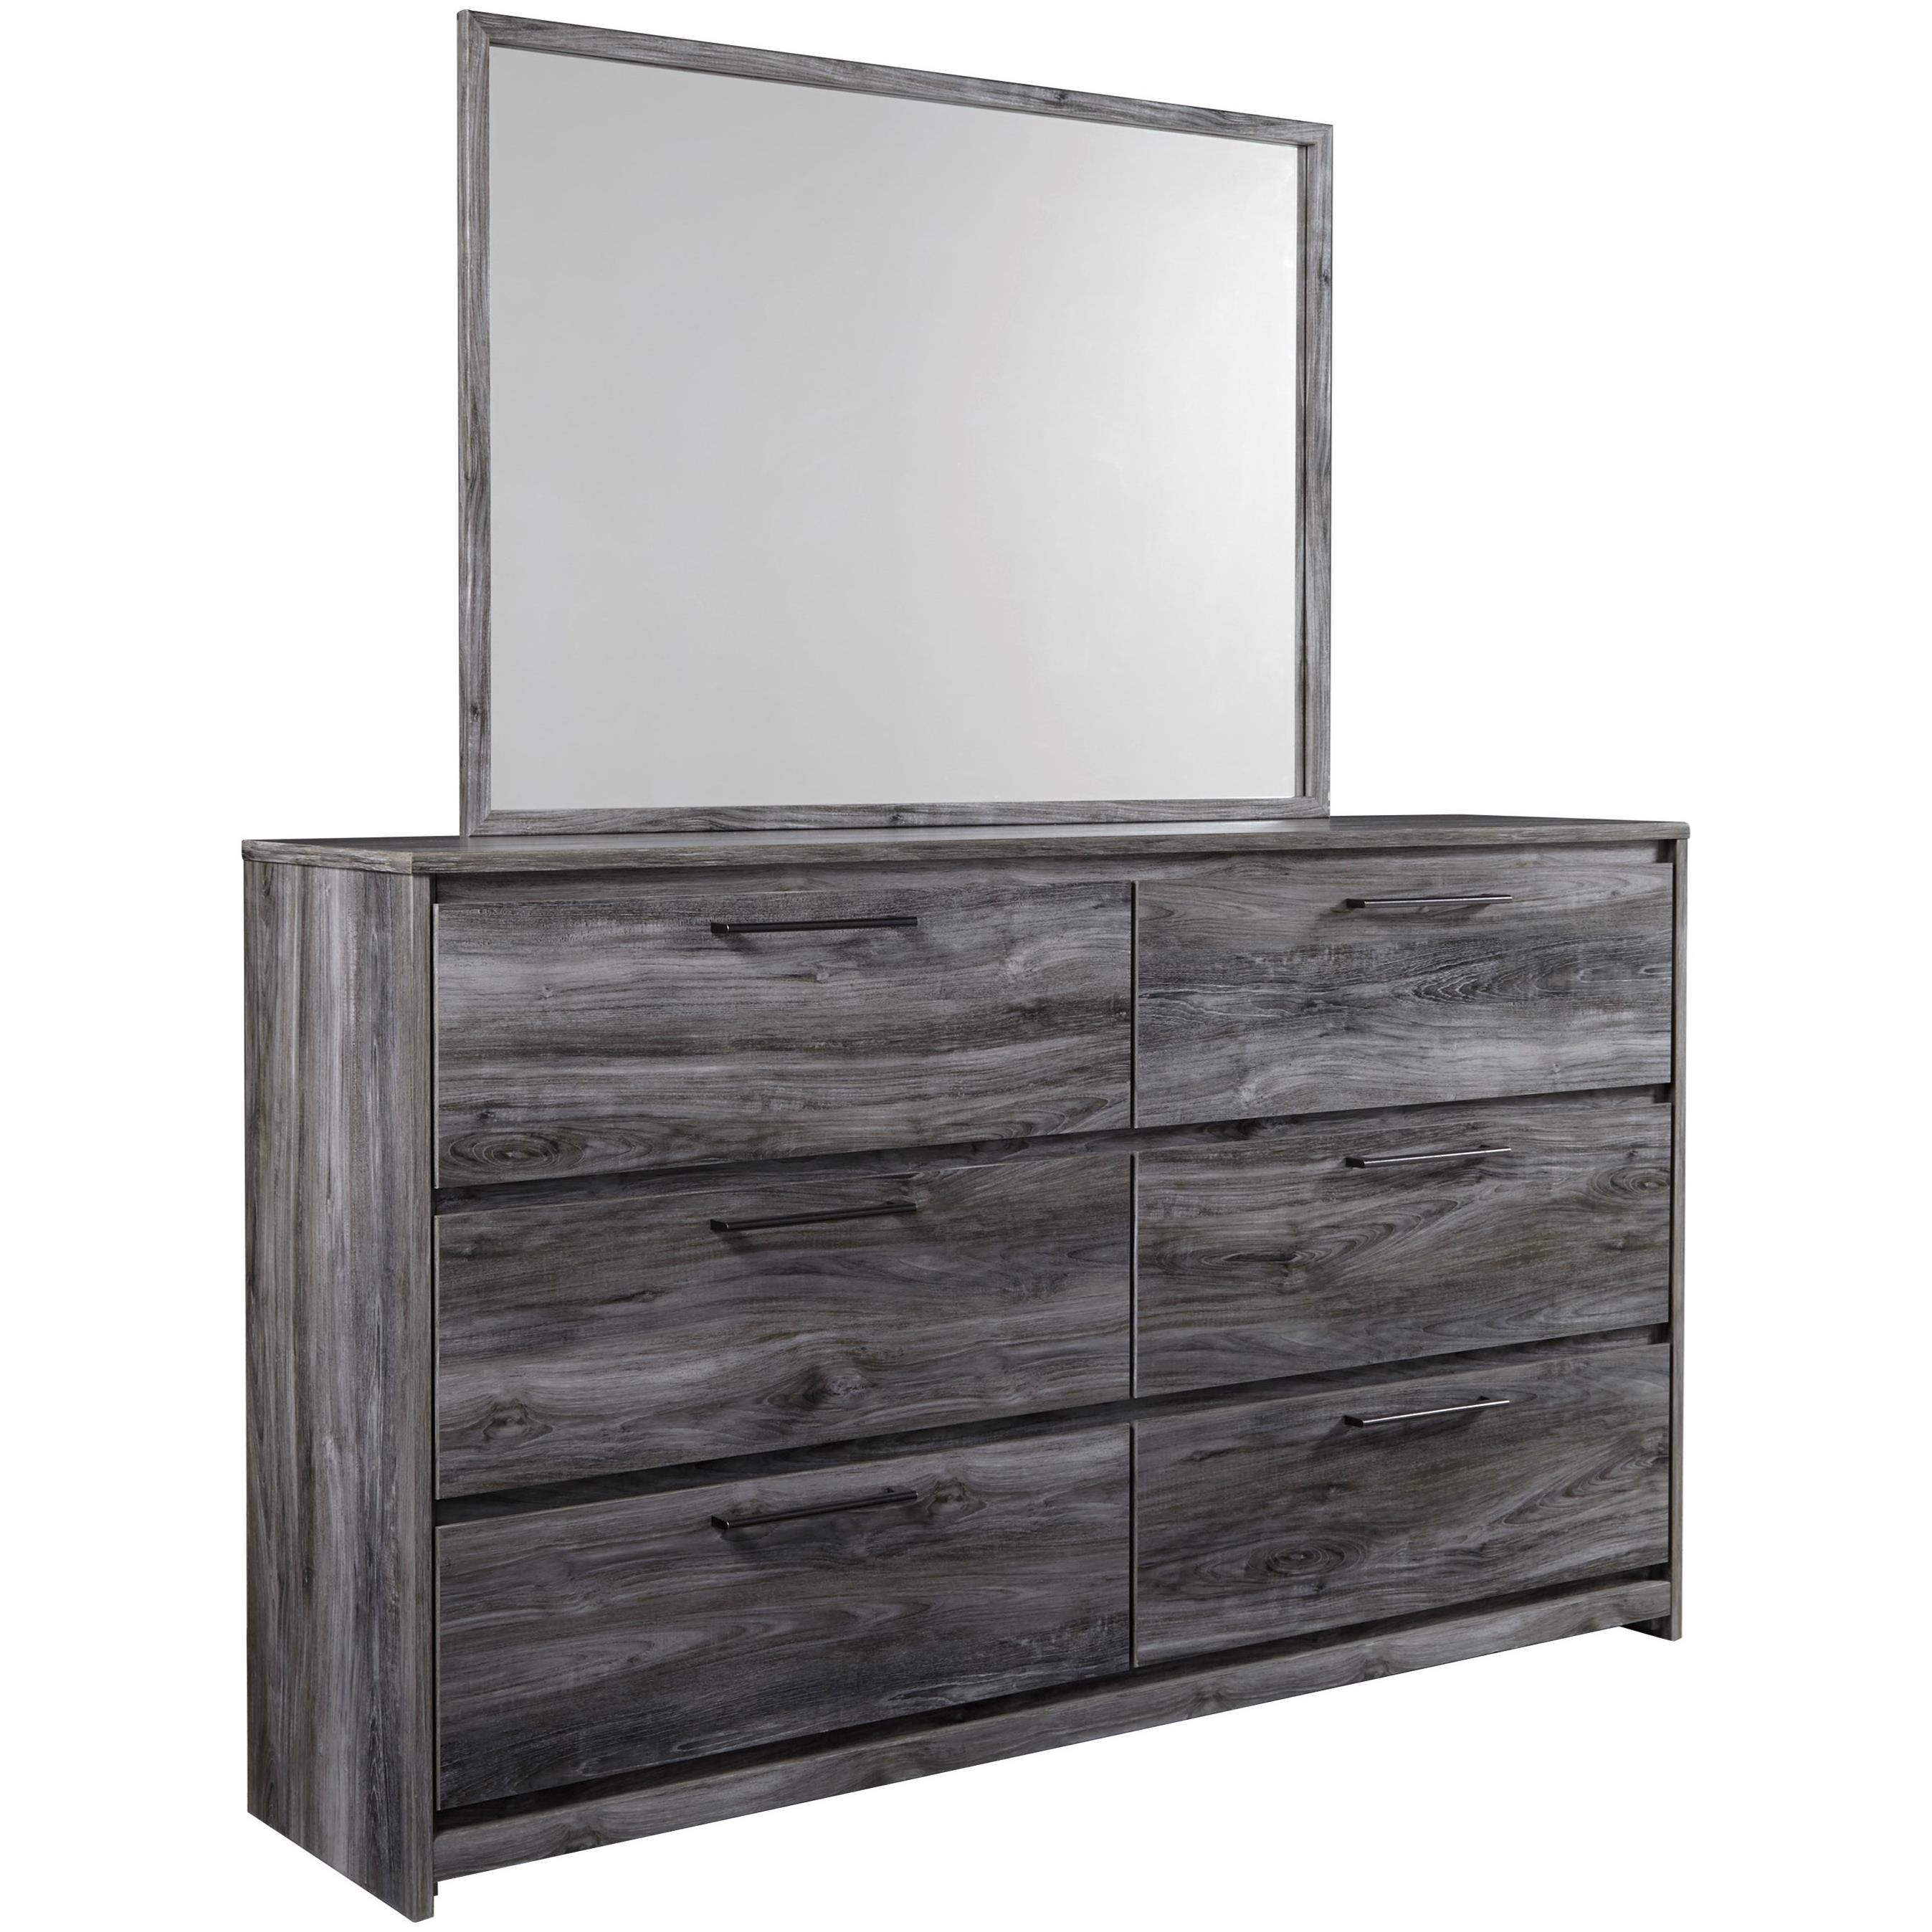 Baystorm Dresser & Mirror by Signature Design by Ashley at Red Knot